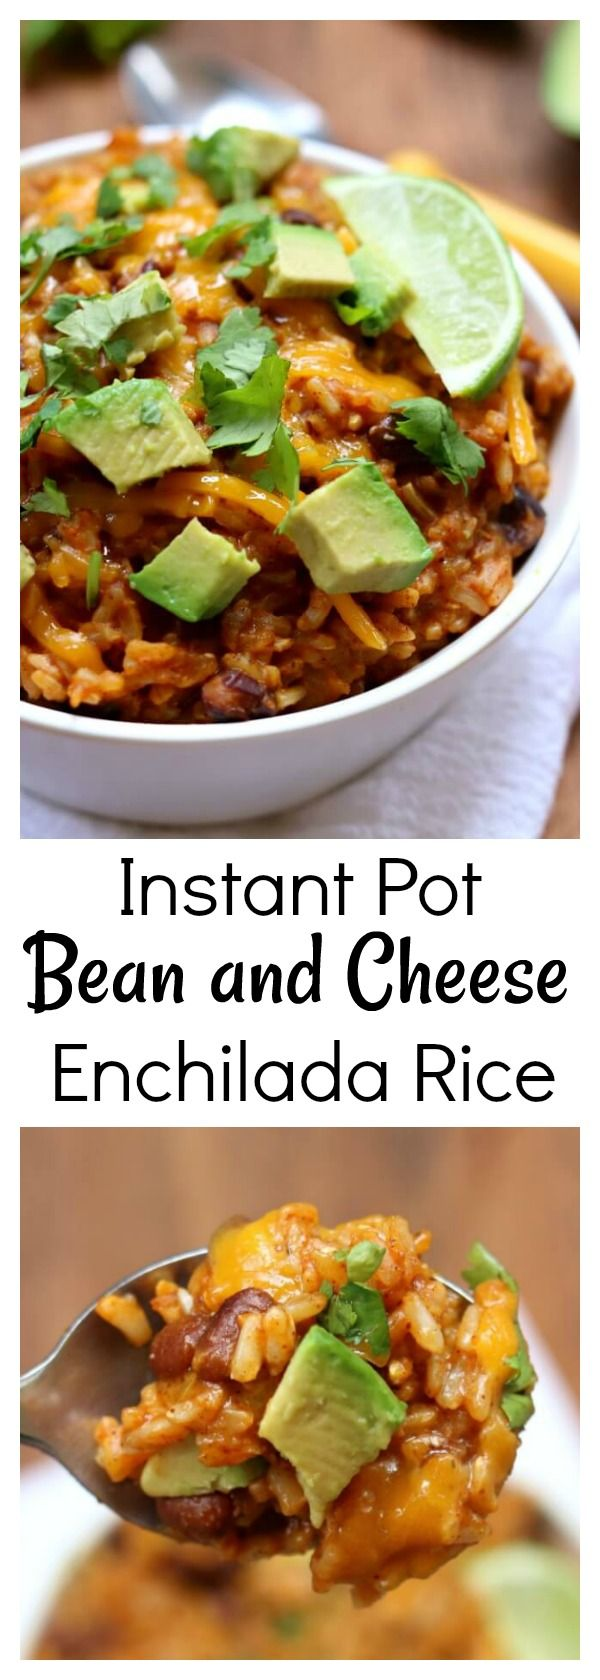 Instant Pot Cheesy Enchilada Rice–brown rice is pressure cooked with enchilada sauce and spices in minutes and then topped with sharp cheddar, diced avocado and a wedge of lime.